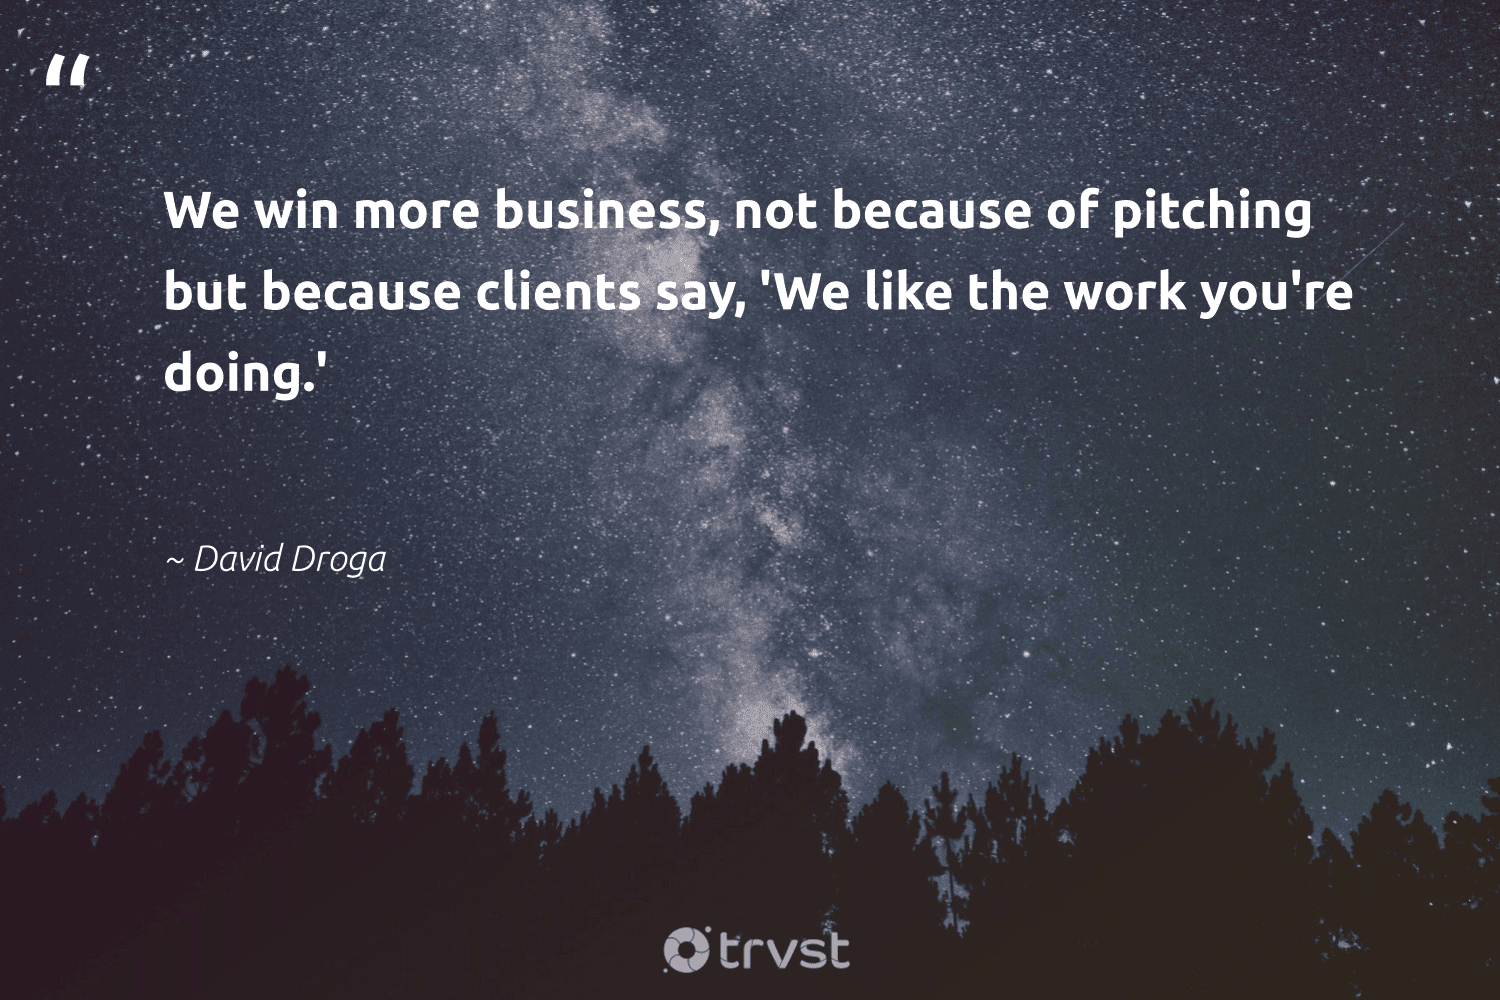 """""""We win more business, not because of pitching but because clients say, 'We like the work you're doing.'""""  - David Droga #trvst #quotes #begreat #ecoconscious #futureofwork #dosomething #softskills #bethechange #nevergiveup #changetheworld #takeaction #thinkgreen"""